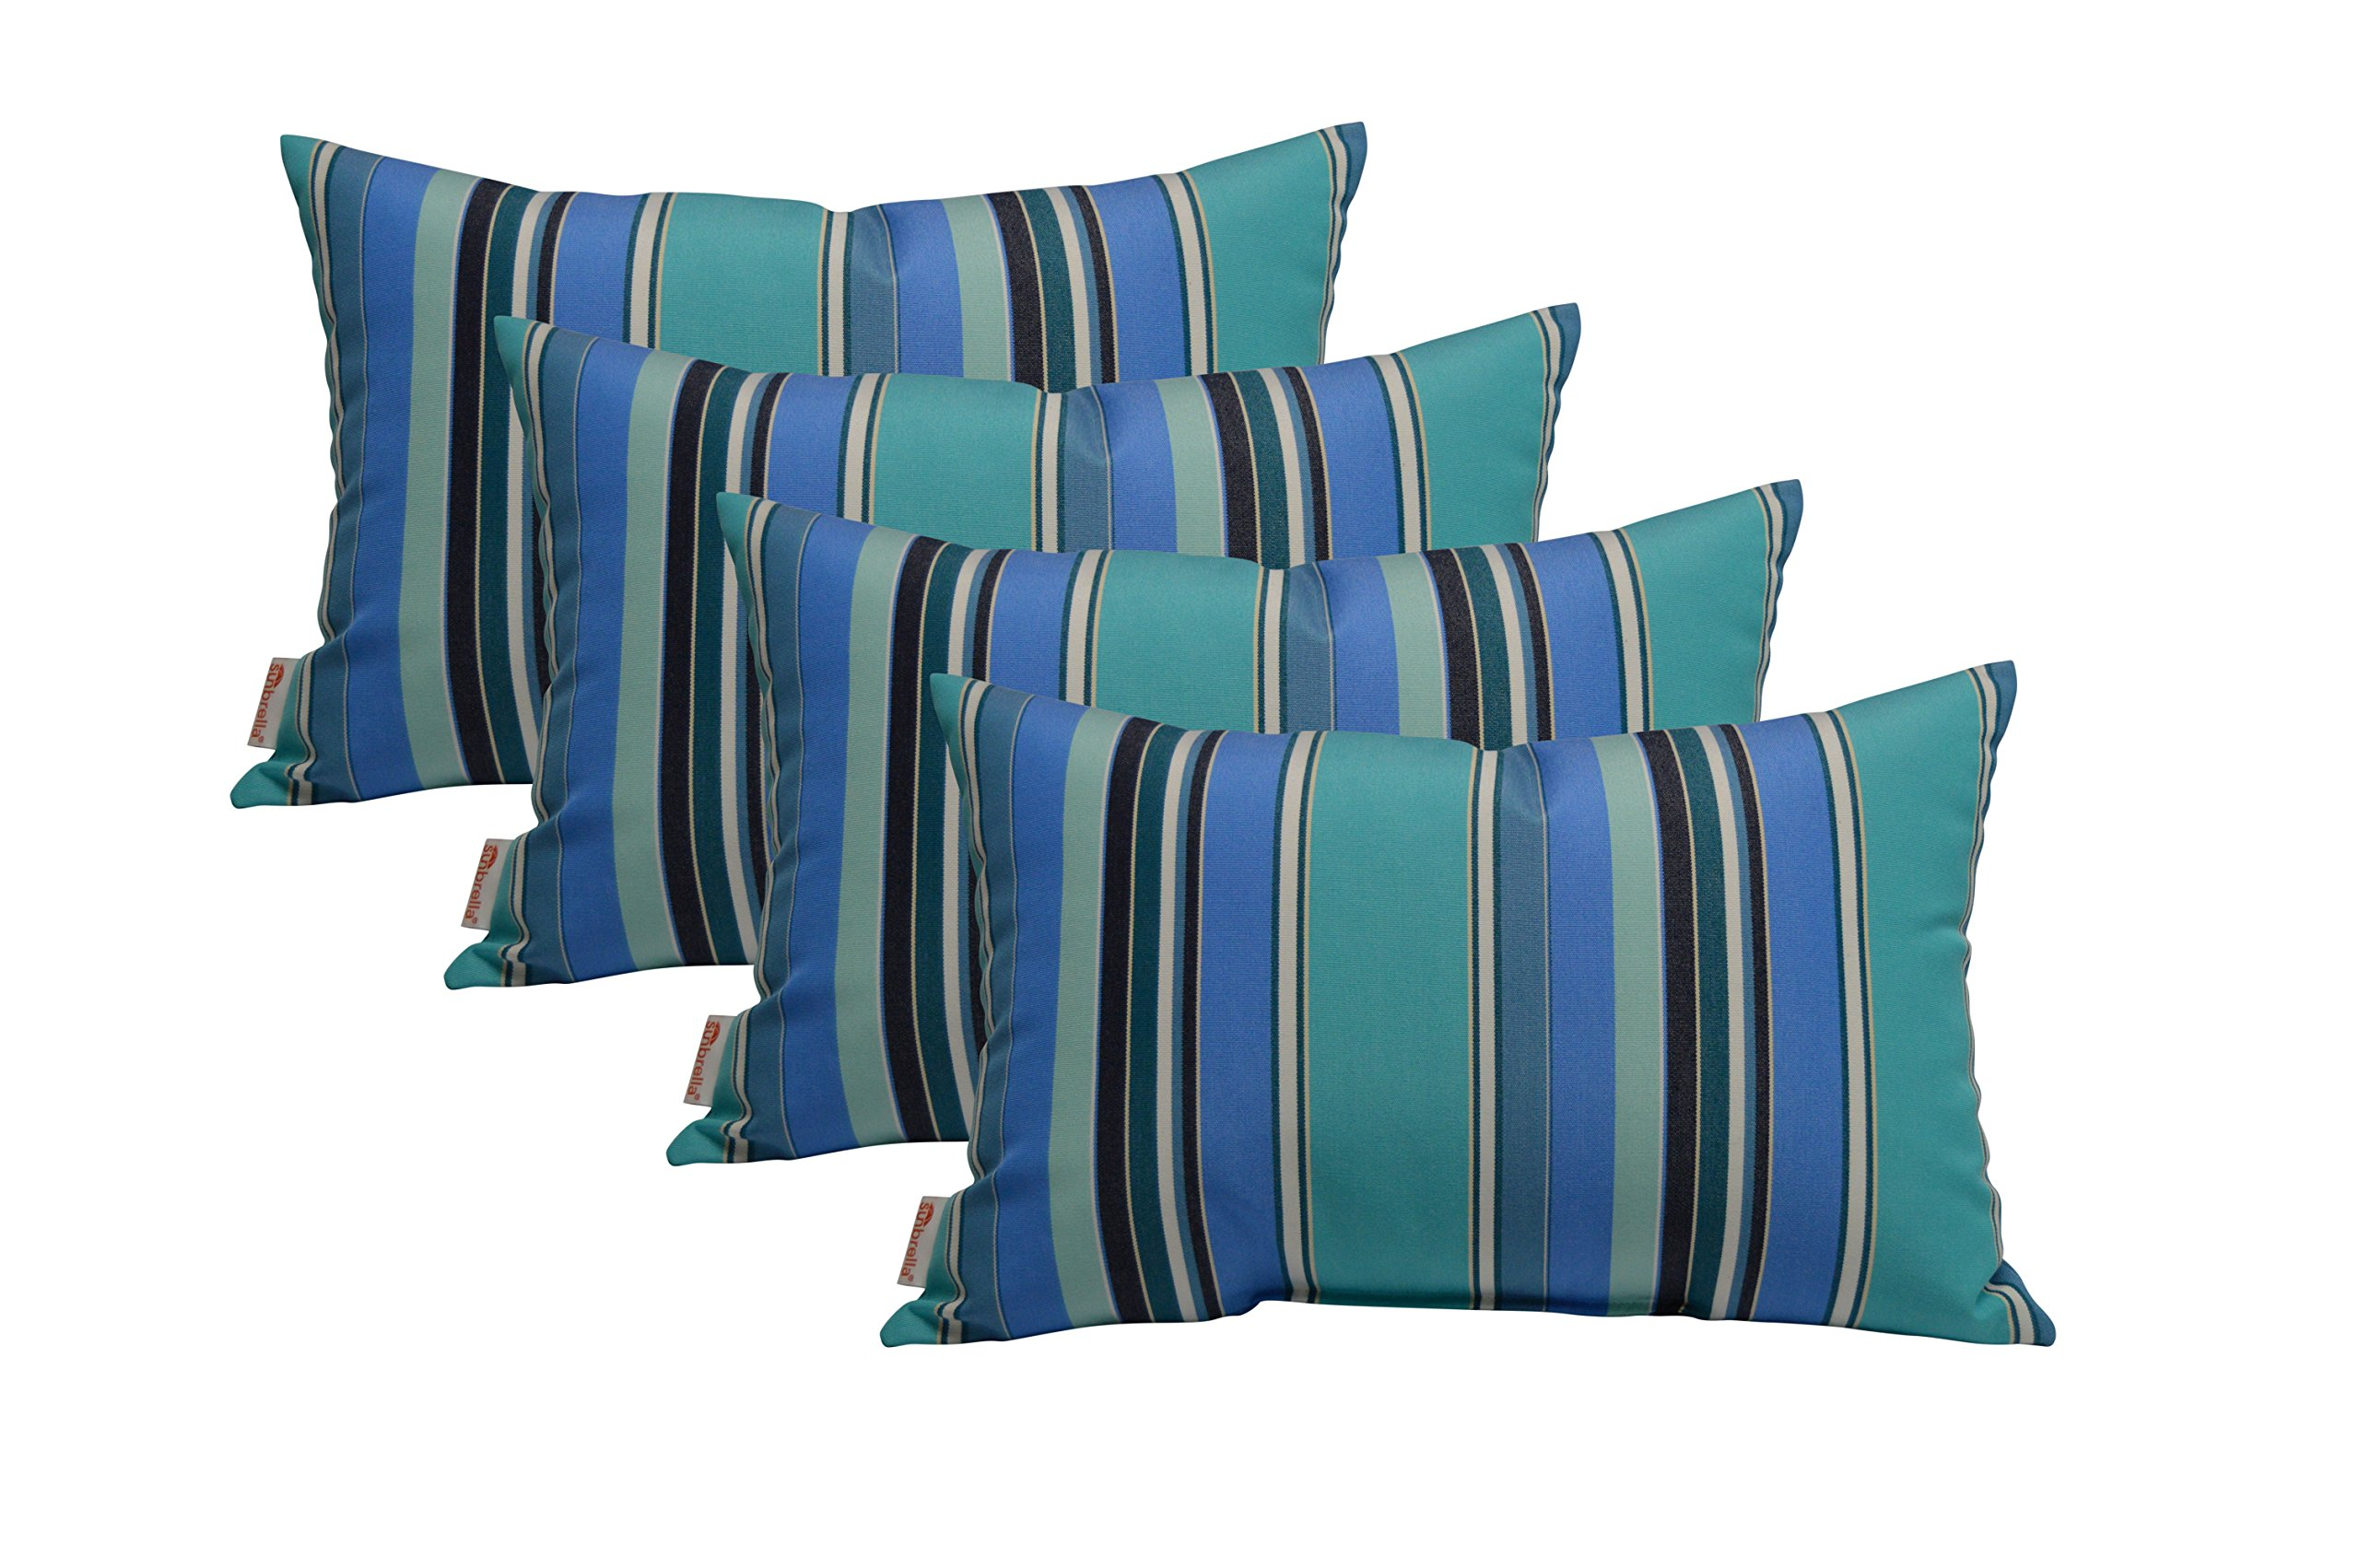 Sunbrella  Indoor / Outdoor Decorative Lumbar / Rectangle Pillows, Blue/Teal/Navy/White Stripe, Set Of 4 by Sunbrella